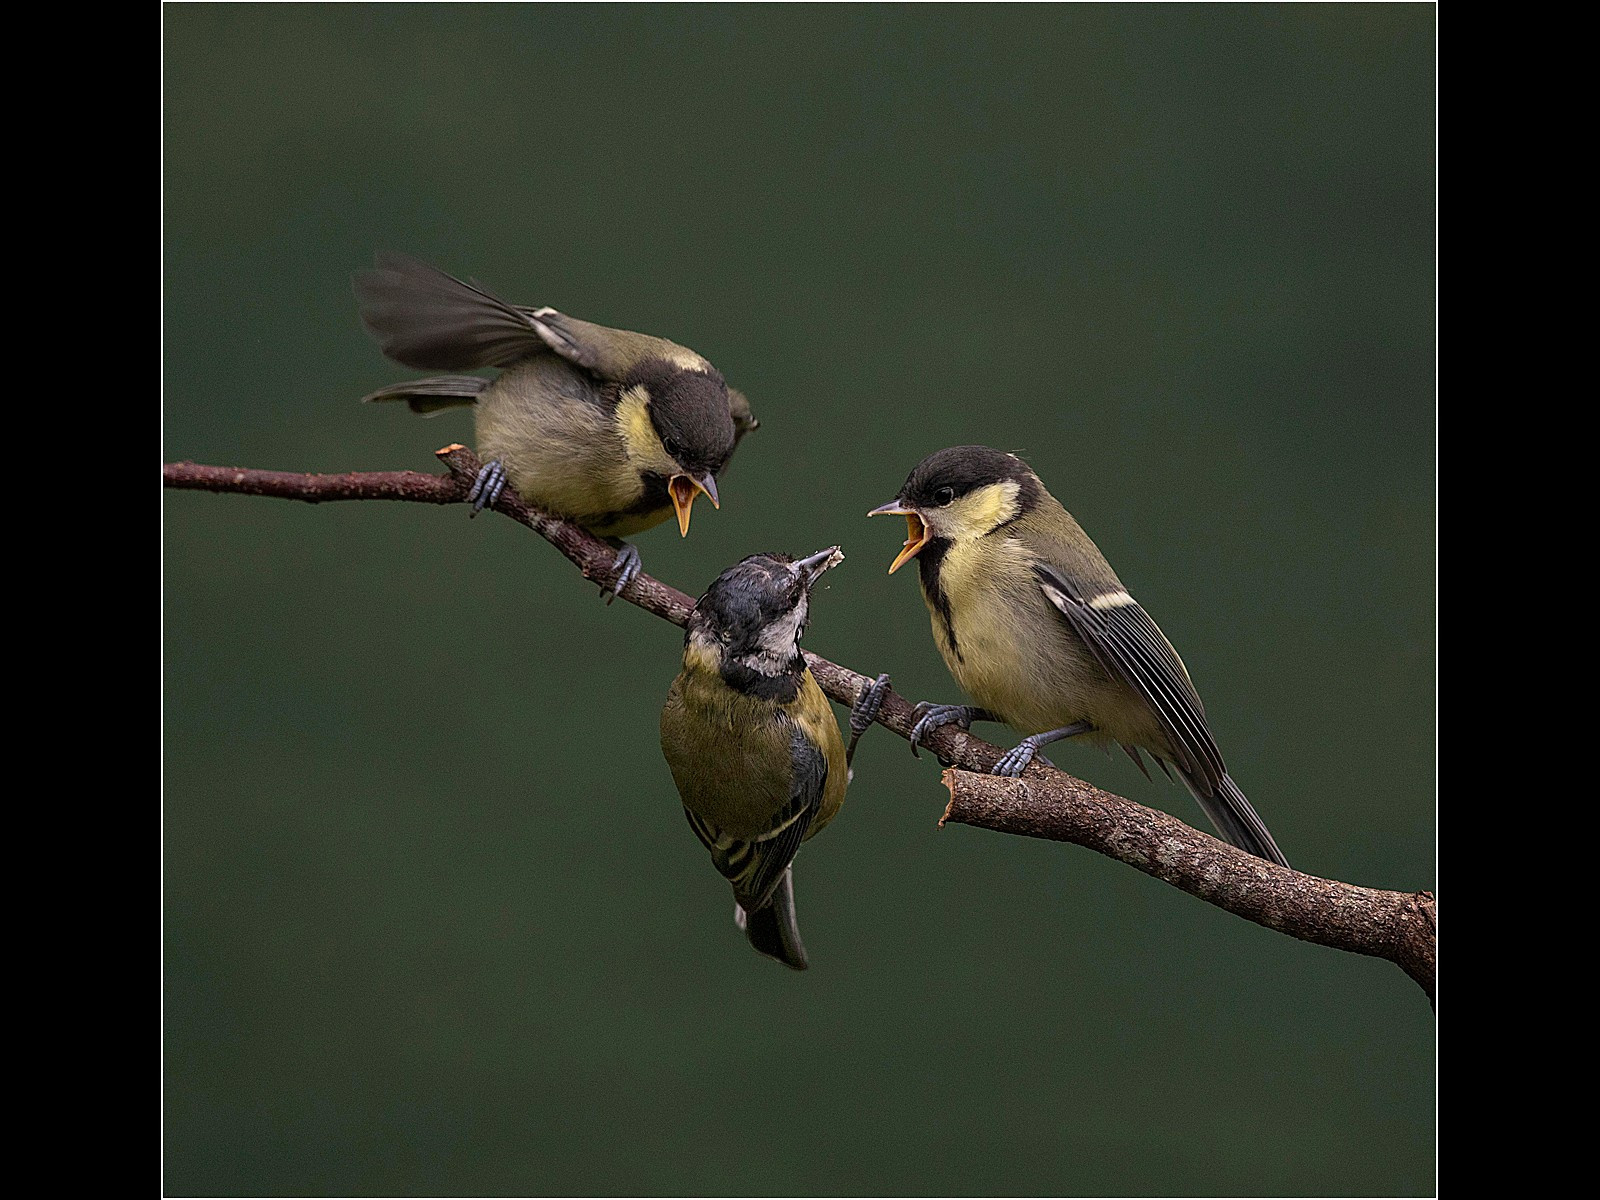 Female Great Tit Feeding Young